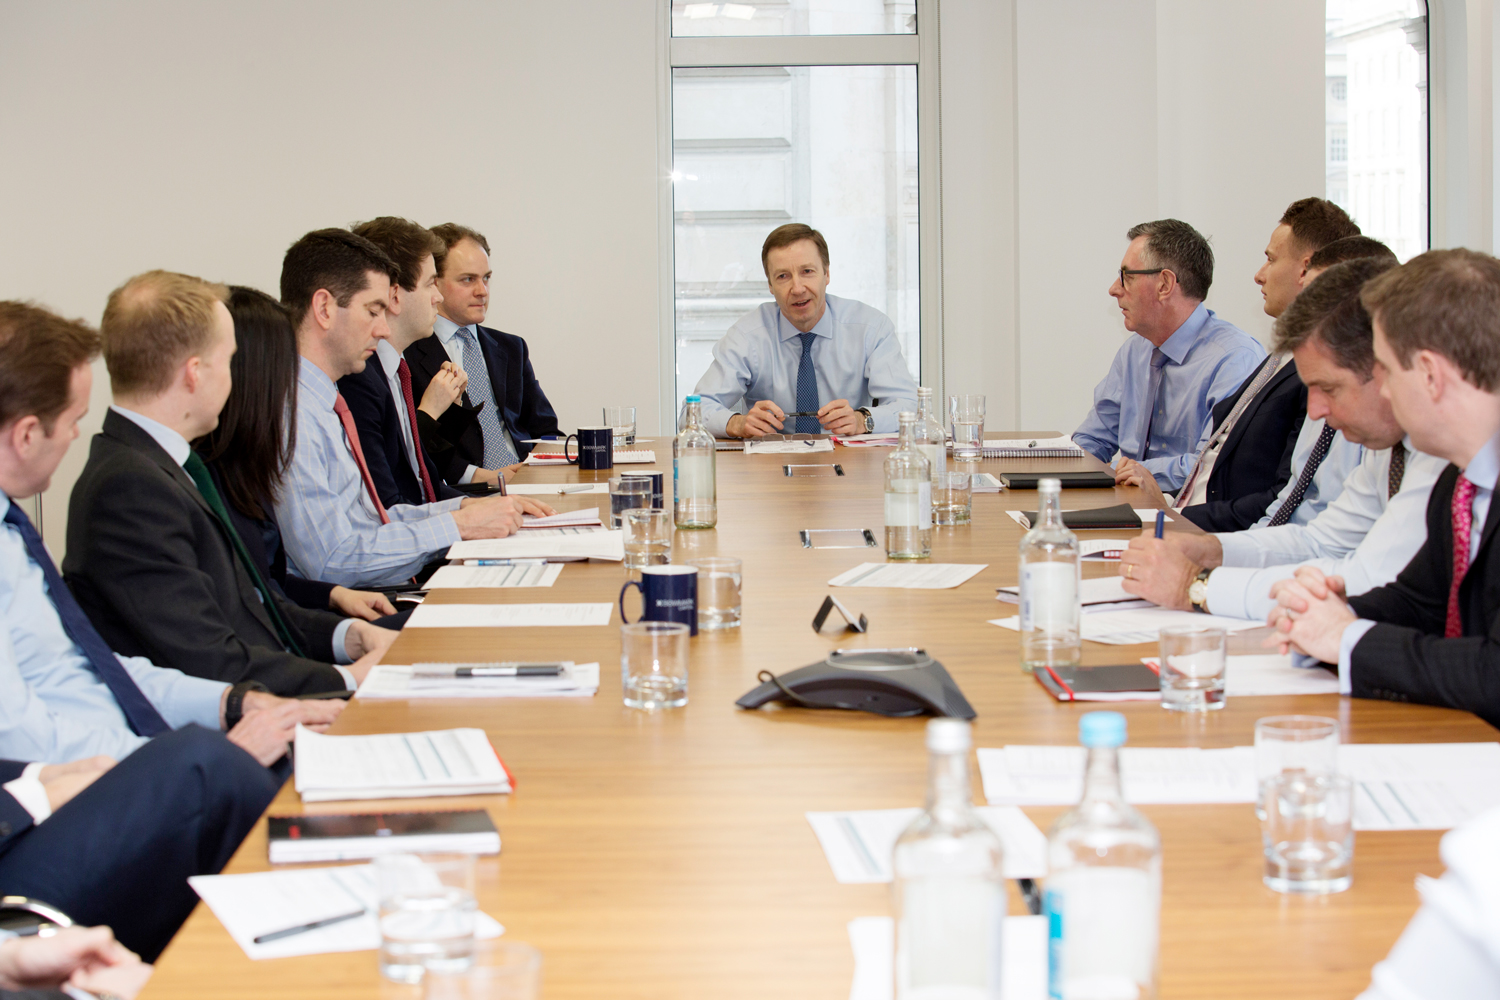 Boardroom photography